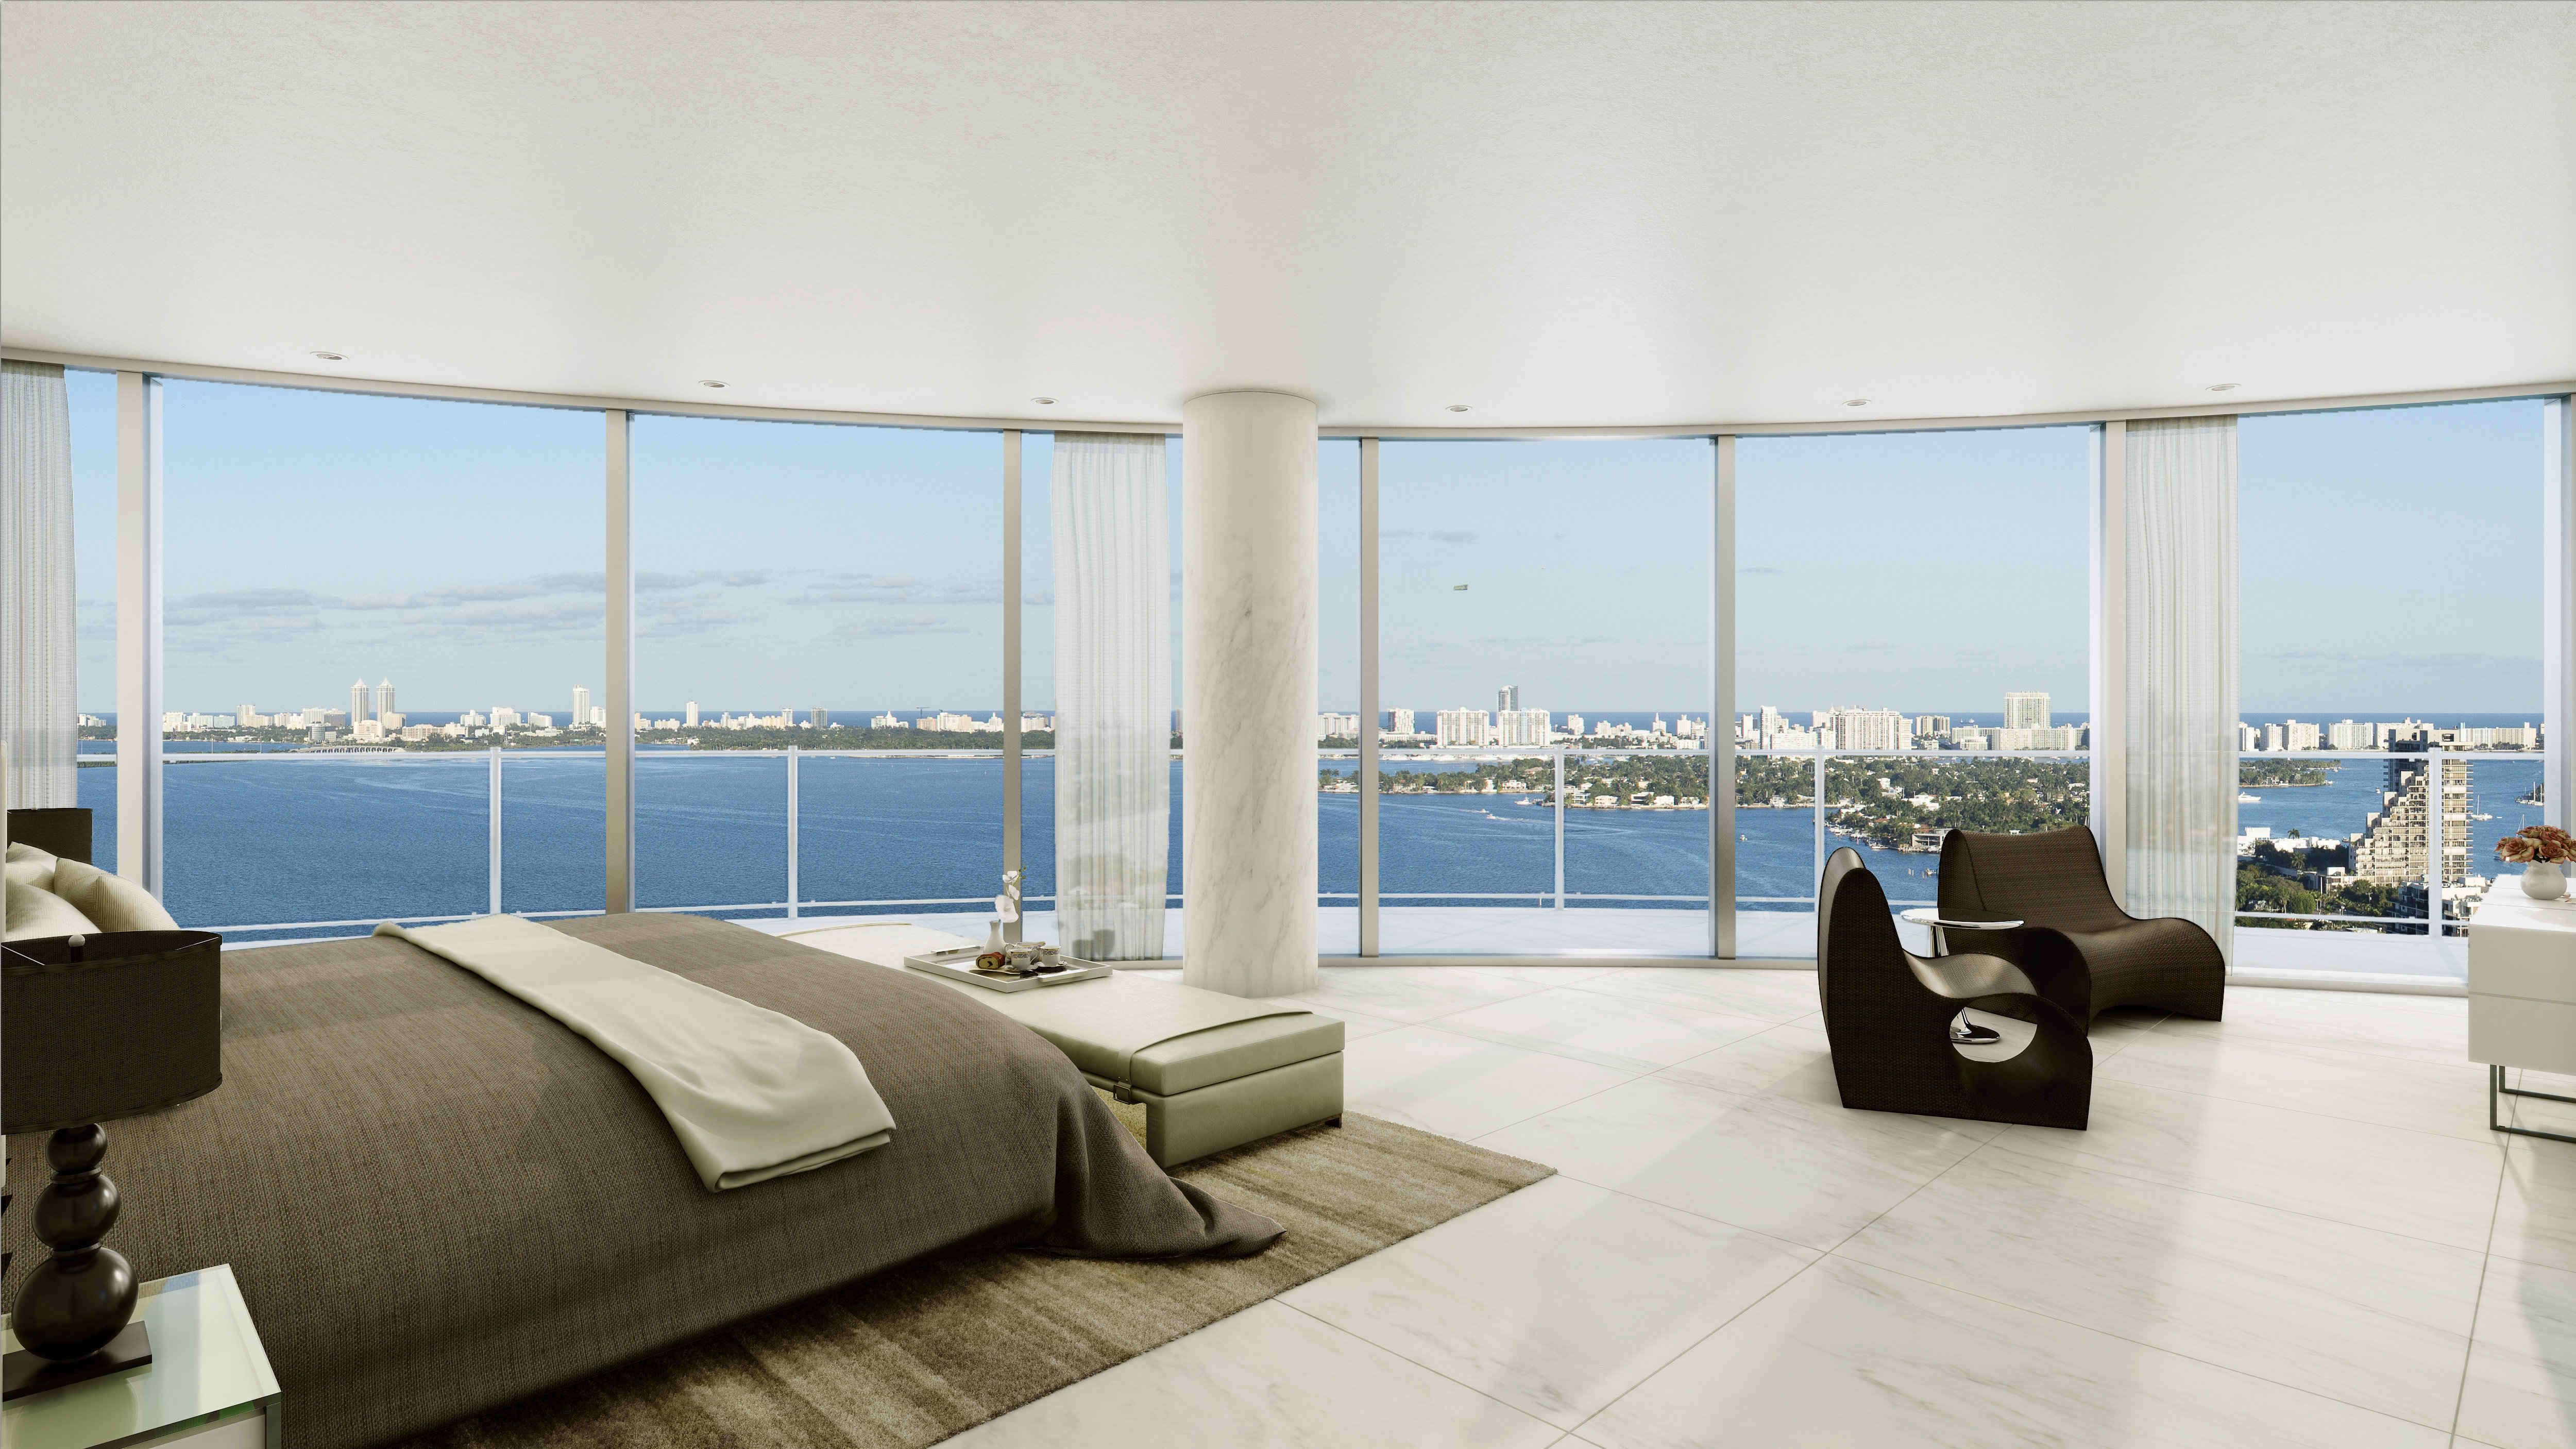 Miami 3 Bedroom Luxury Condo For Sale